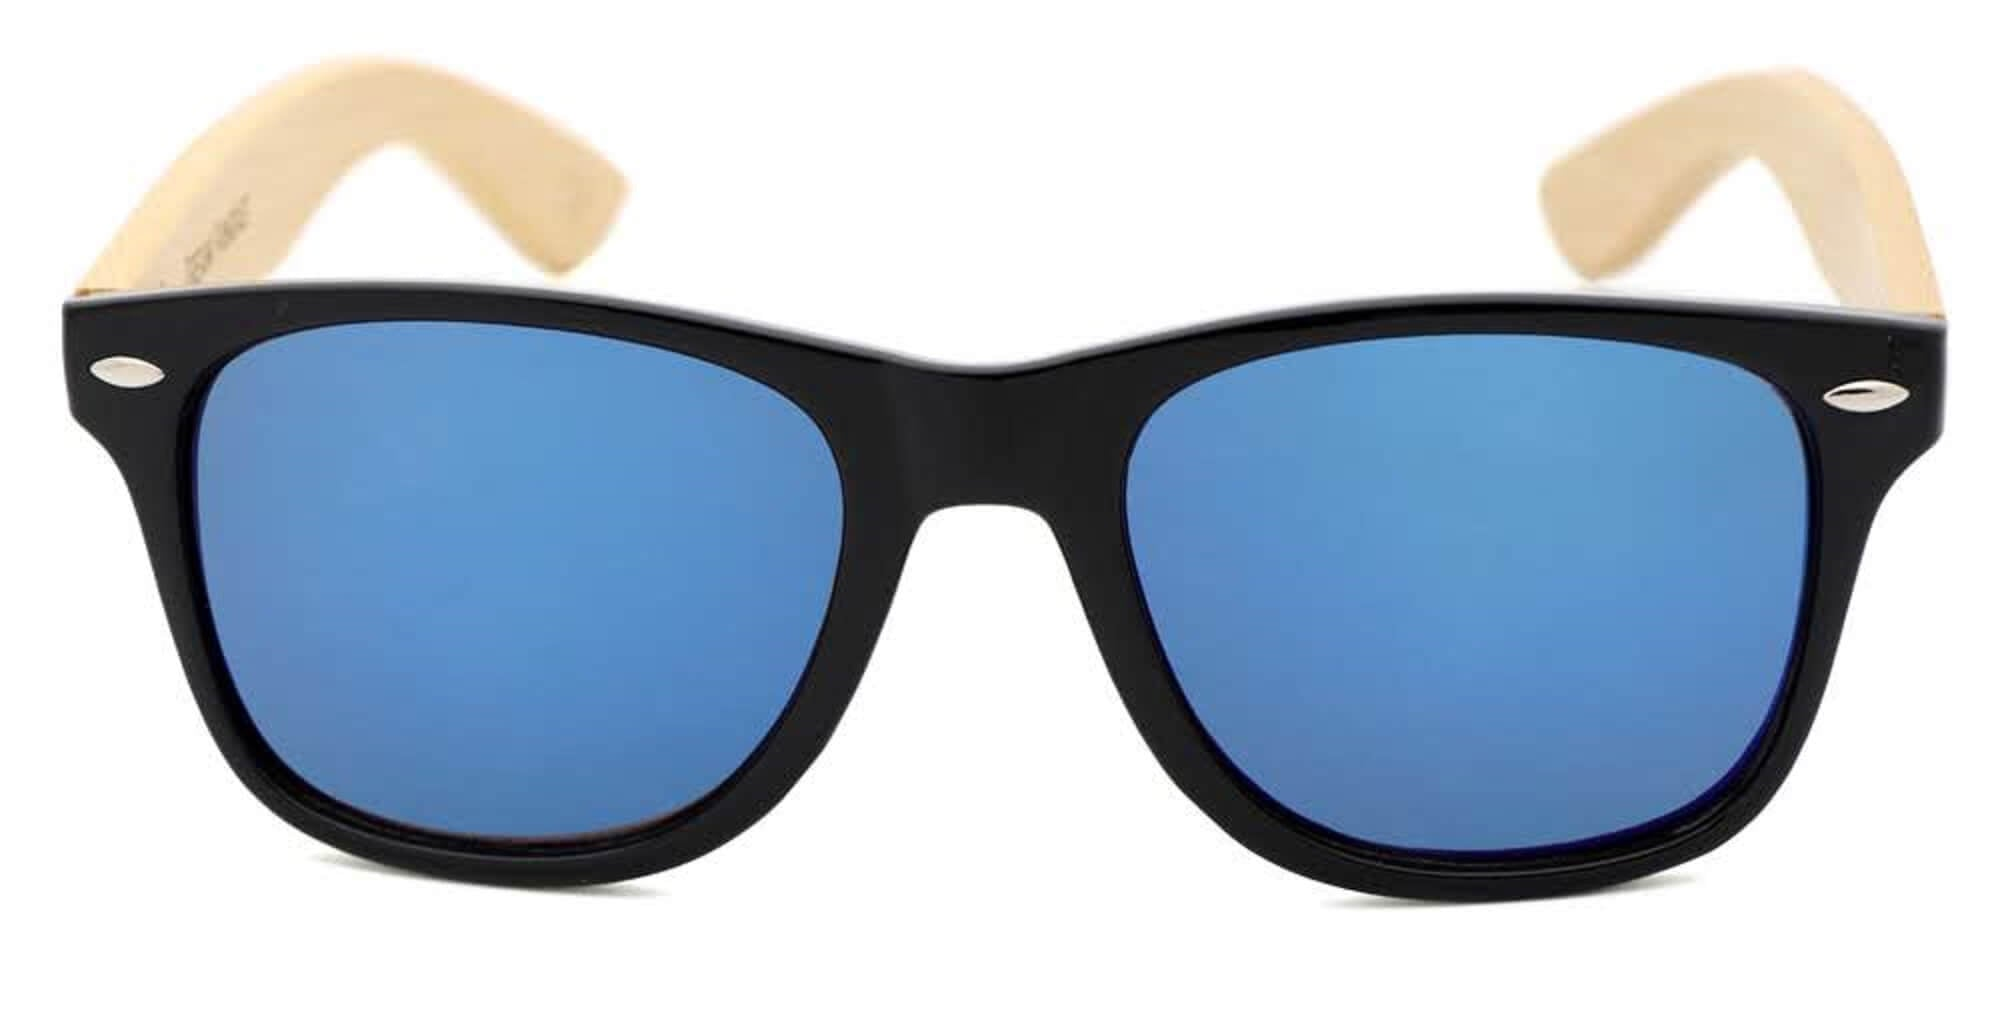 Black & Blue Wood Sunglasses